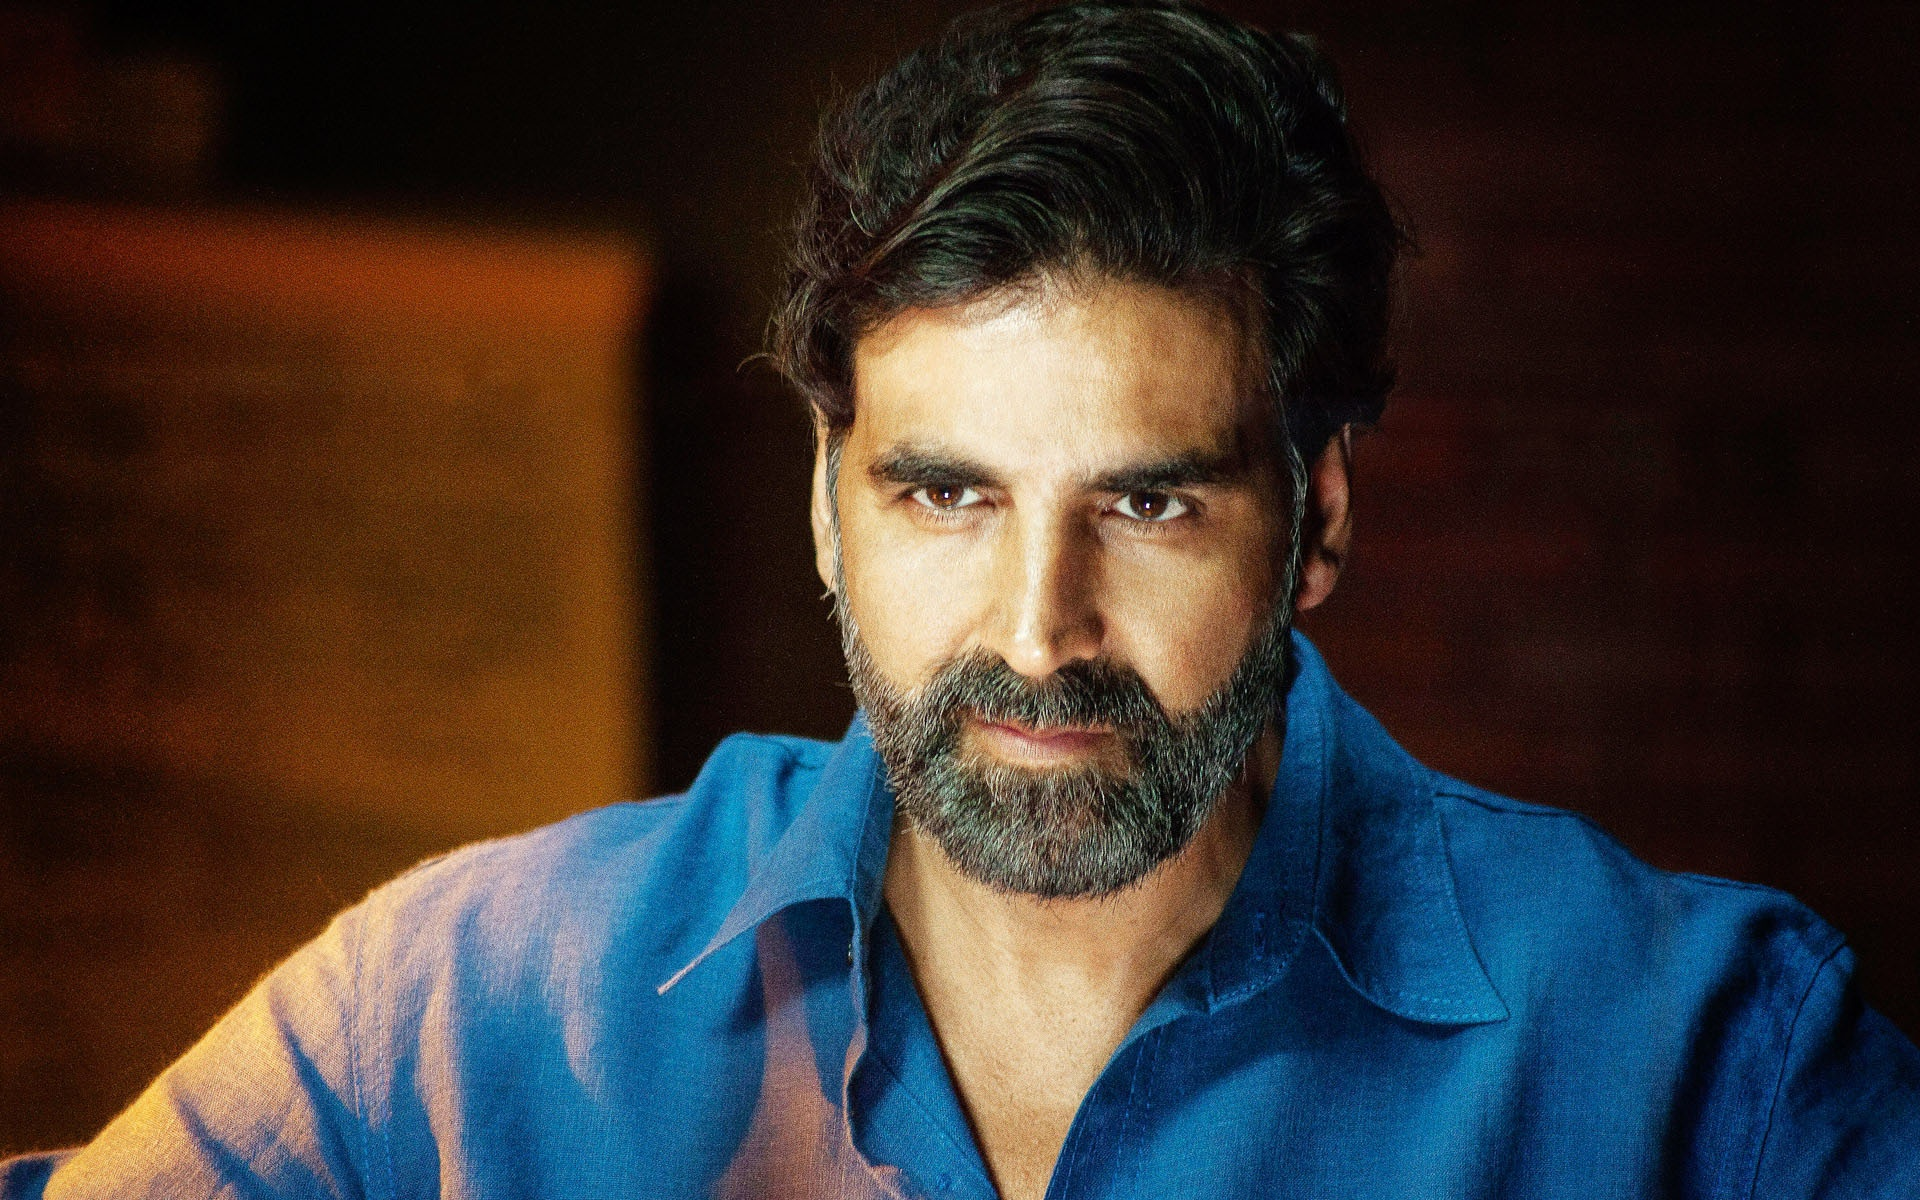 Akshay kumar photo & wallpaper celebrity biography, images.